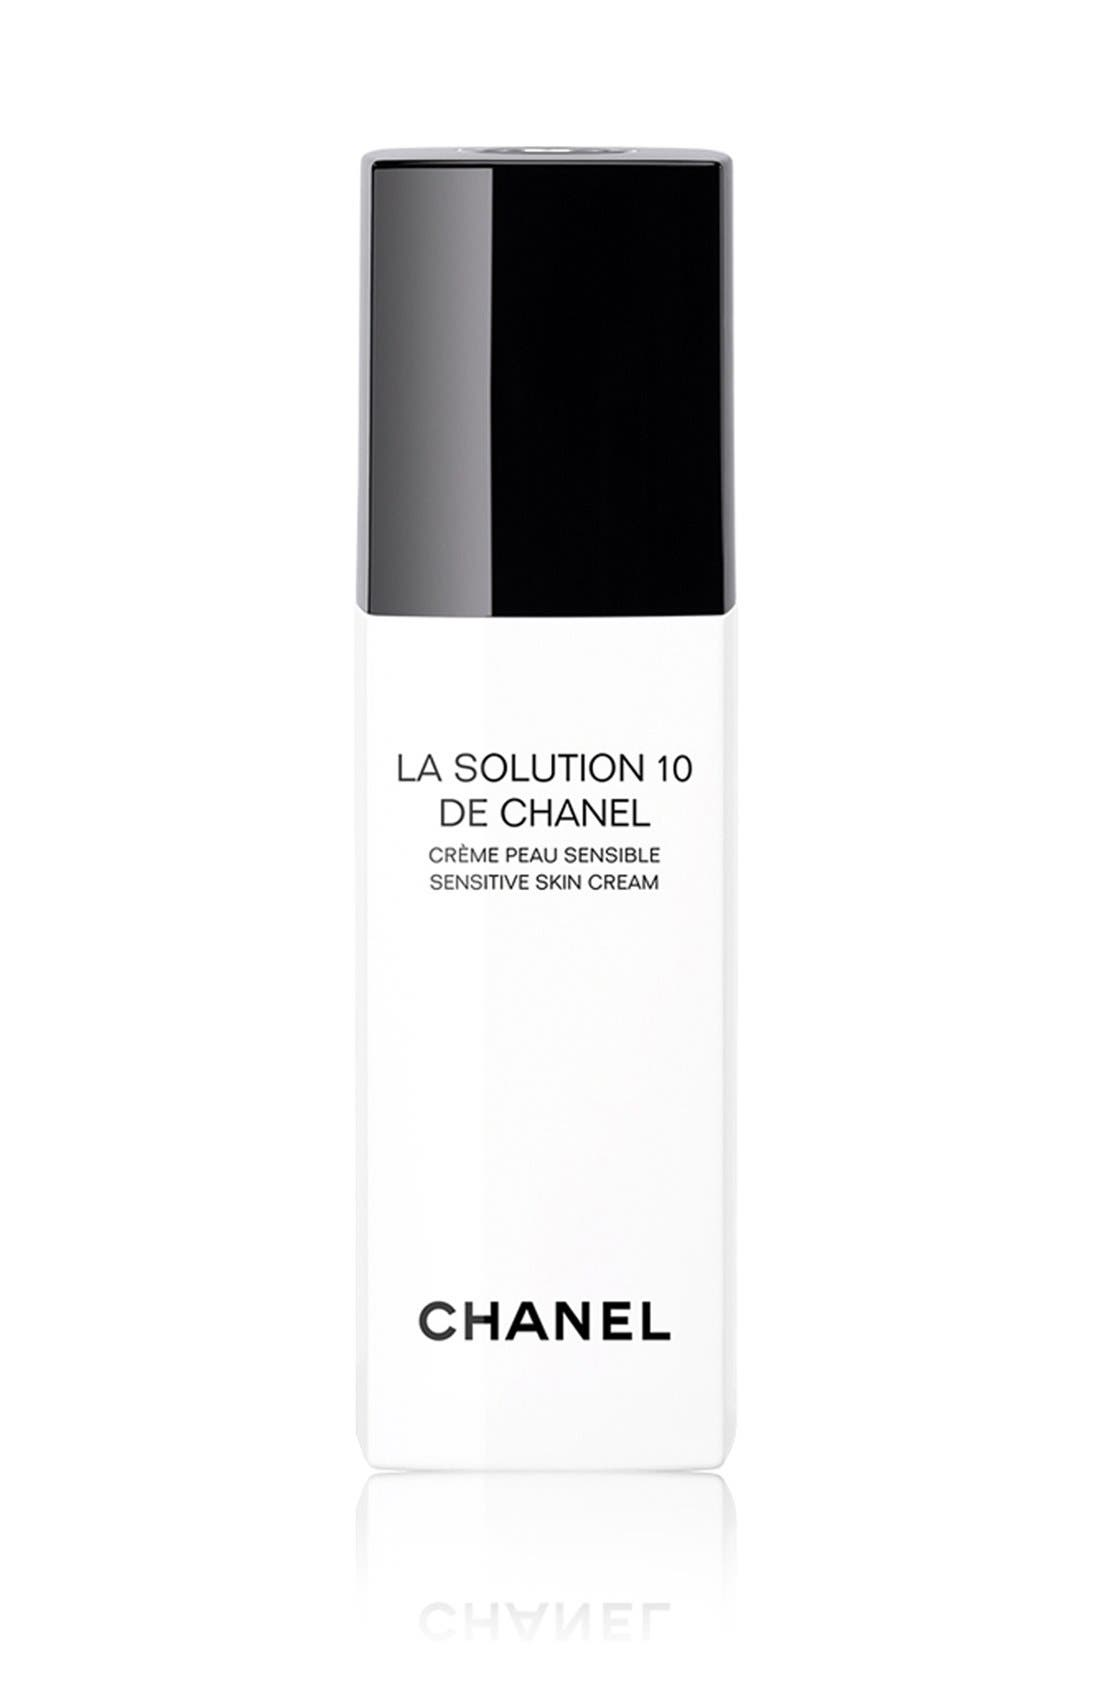 CHANEL LA SOLUTION 10 DE CHANEL 